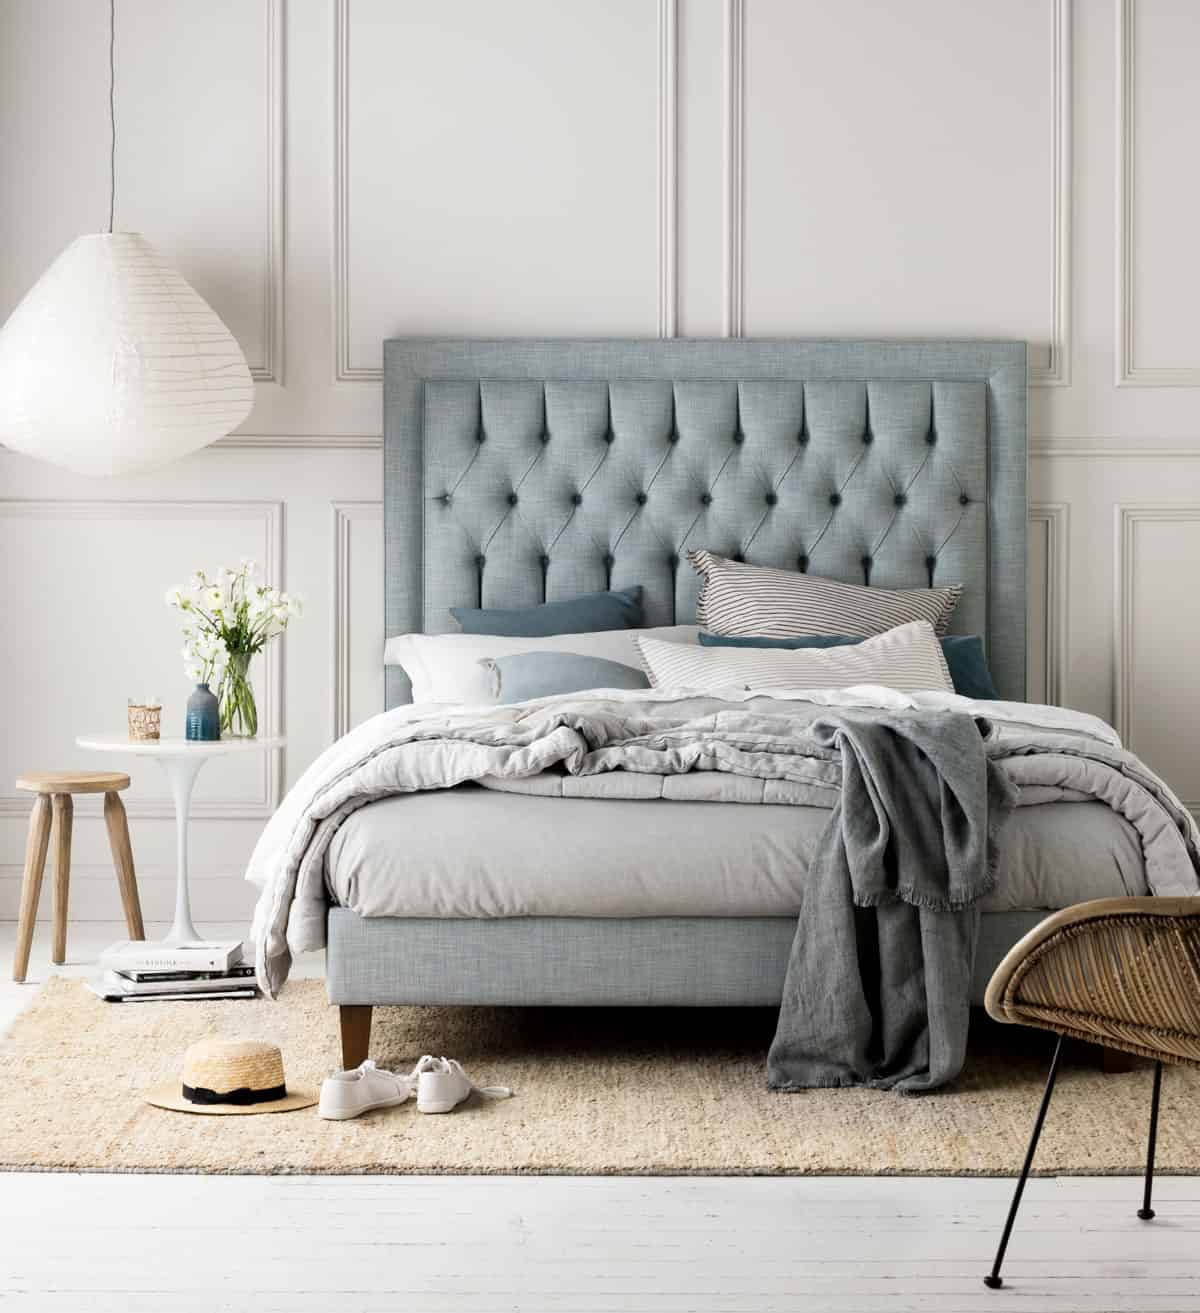 heatherly Design's Tilbury bedhead layered with bed linen and throws and shoes at the end of the bed